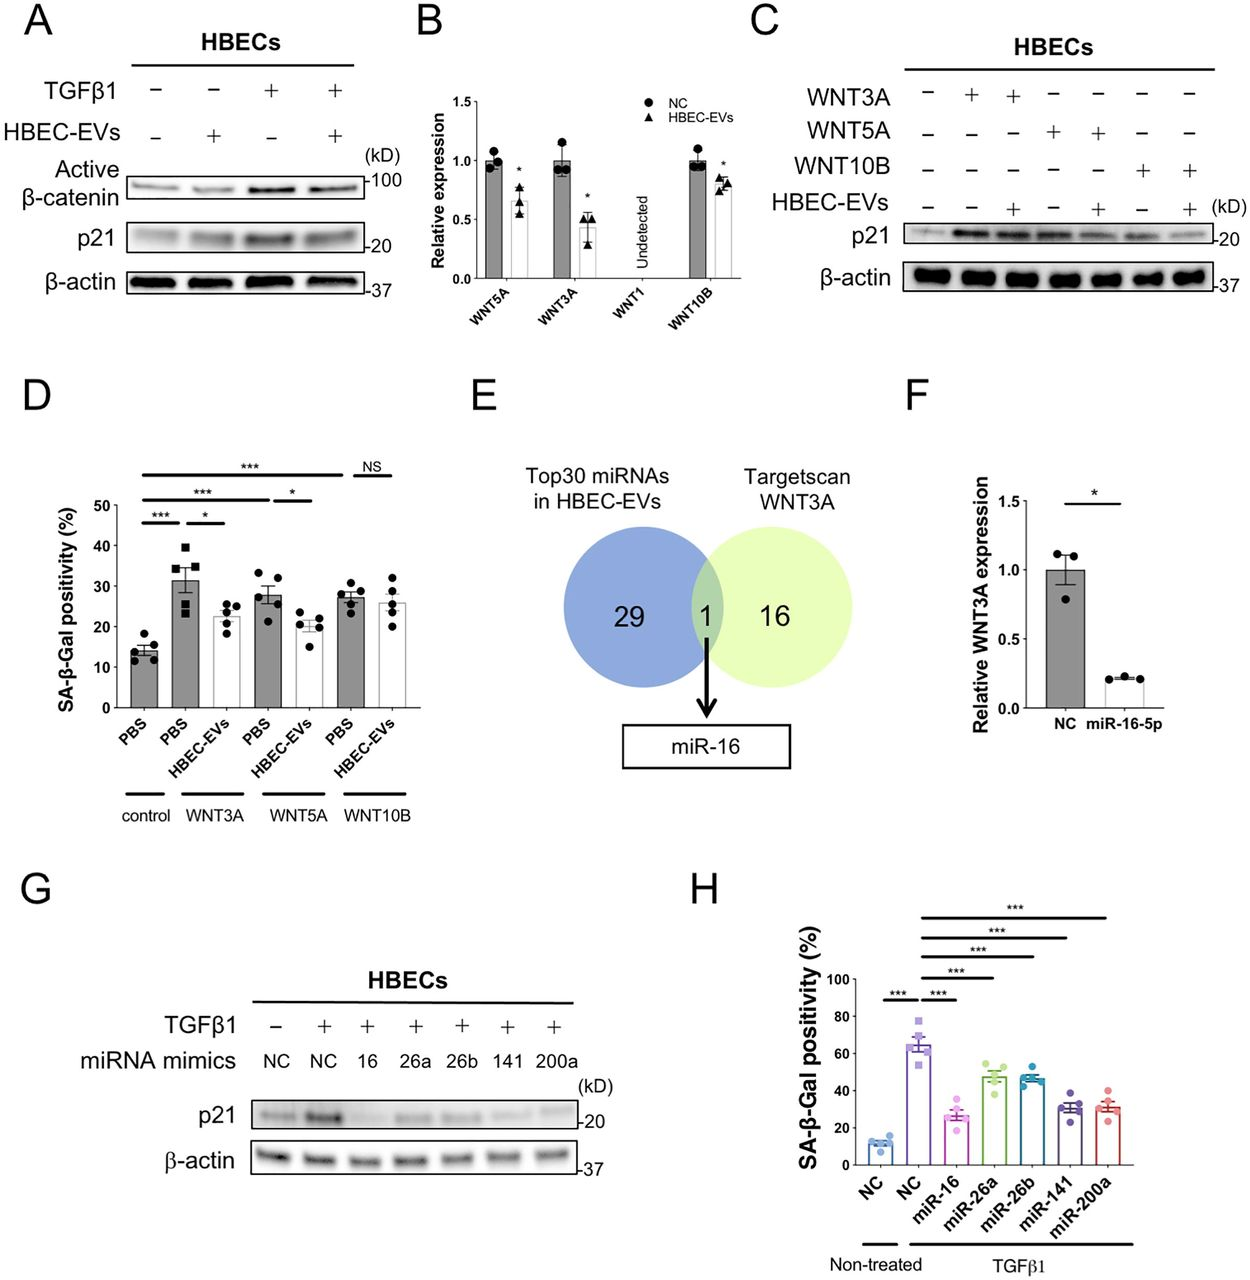 miRNA cargo in HBEC EVs attenuates TGF-β-induced epithelial cell senescence via suppression of WNT3A and WNT5A expression . A Representative immunoblot showing the amount of active β-catenin and β-actin in HBECs treated for 48 h with PBS or HBEC EVs (10 μg/ml) in the presence or absence of TGF-β1 (2 ng/ml). B qRT-PCR analysis of WNT1, WNT3A, WNT5A and WNT10B mRNAs in HBECs treated for 24 h with HBEC EVs (10 μg/ml, n=3). * P